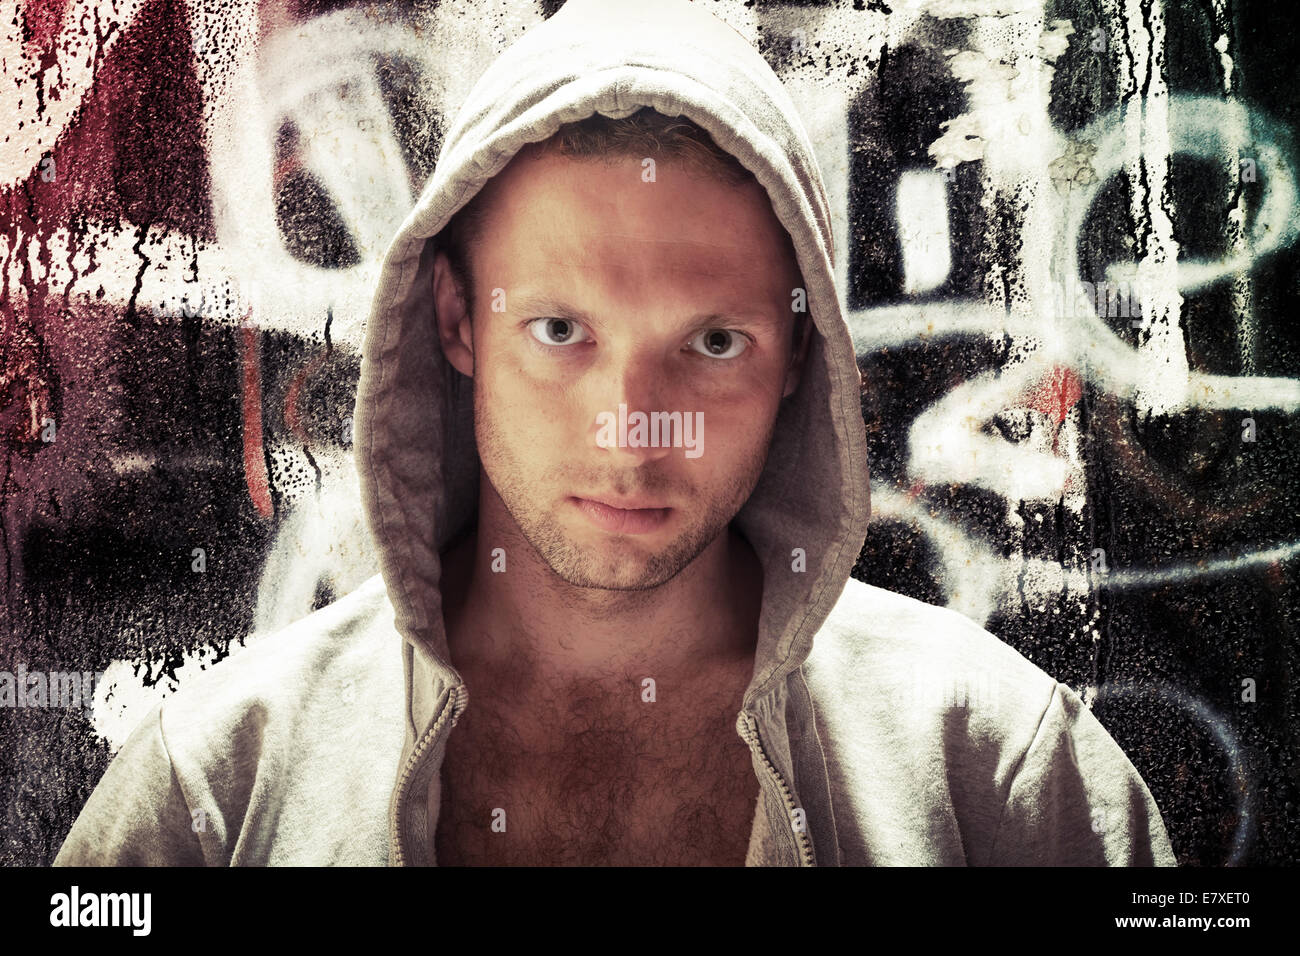 Young Caucasian man in hood, street artist portrait with grungy graffiti wall on background, toned effect - Stock Image